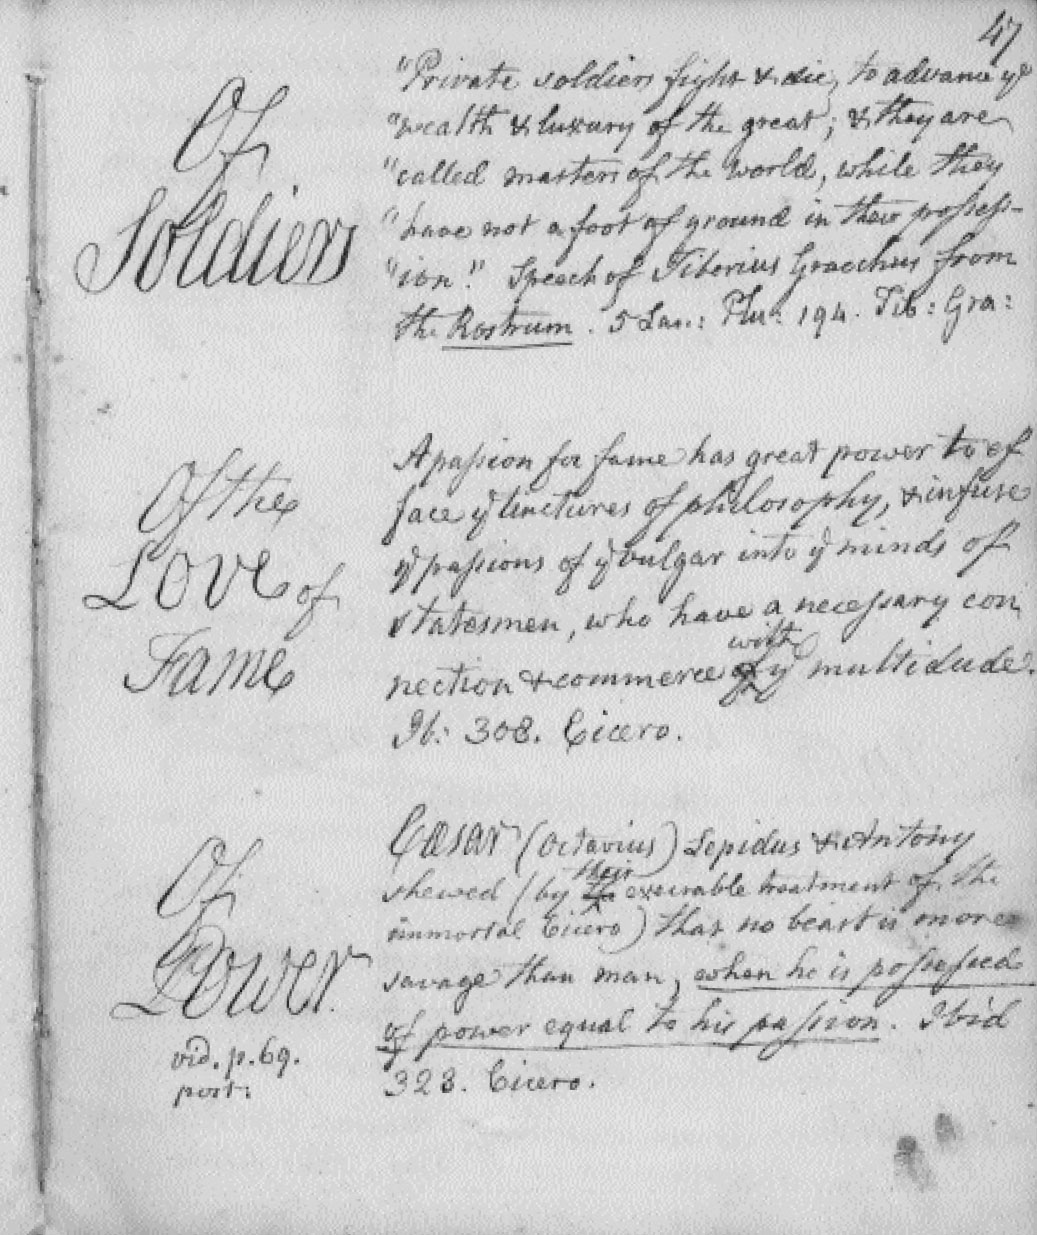 THE POLITICAL COMMONPLACE BOOK - Colonial Society of